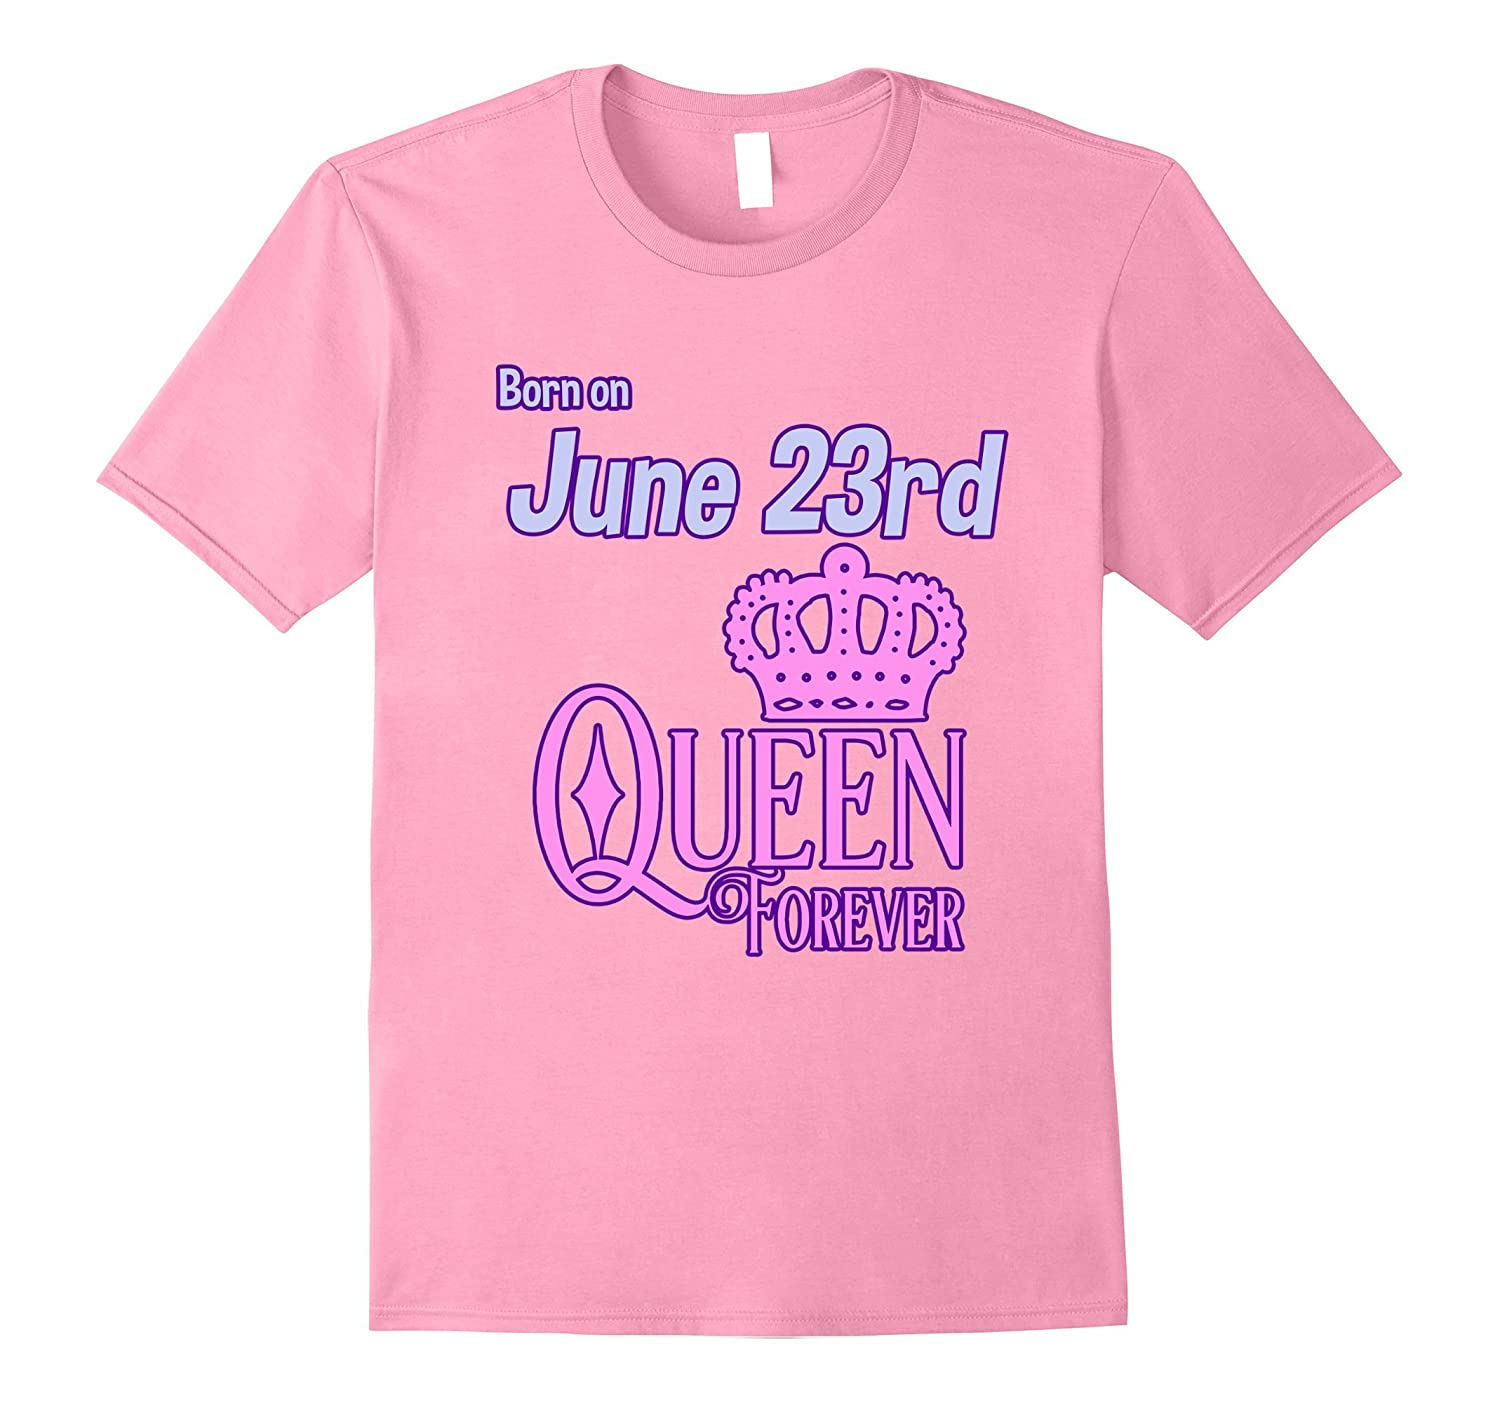 June 23 Birthday Shirt Queen Shirts For Women Or Girls PL